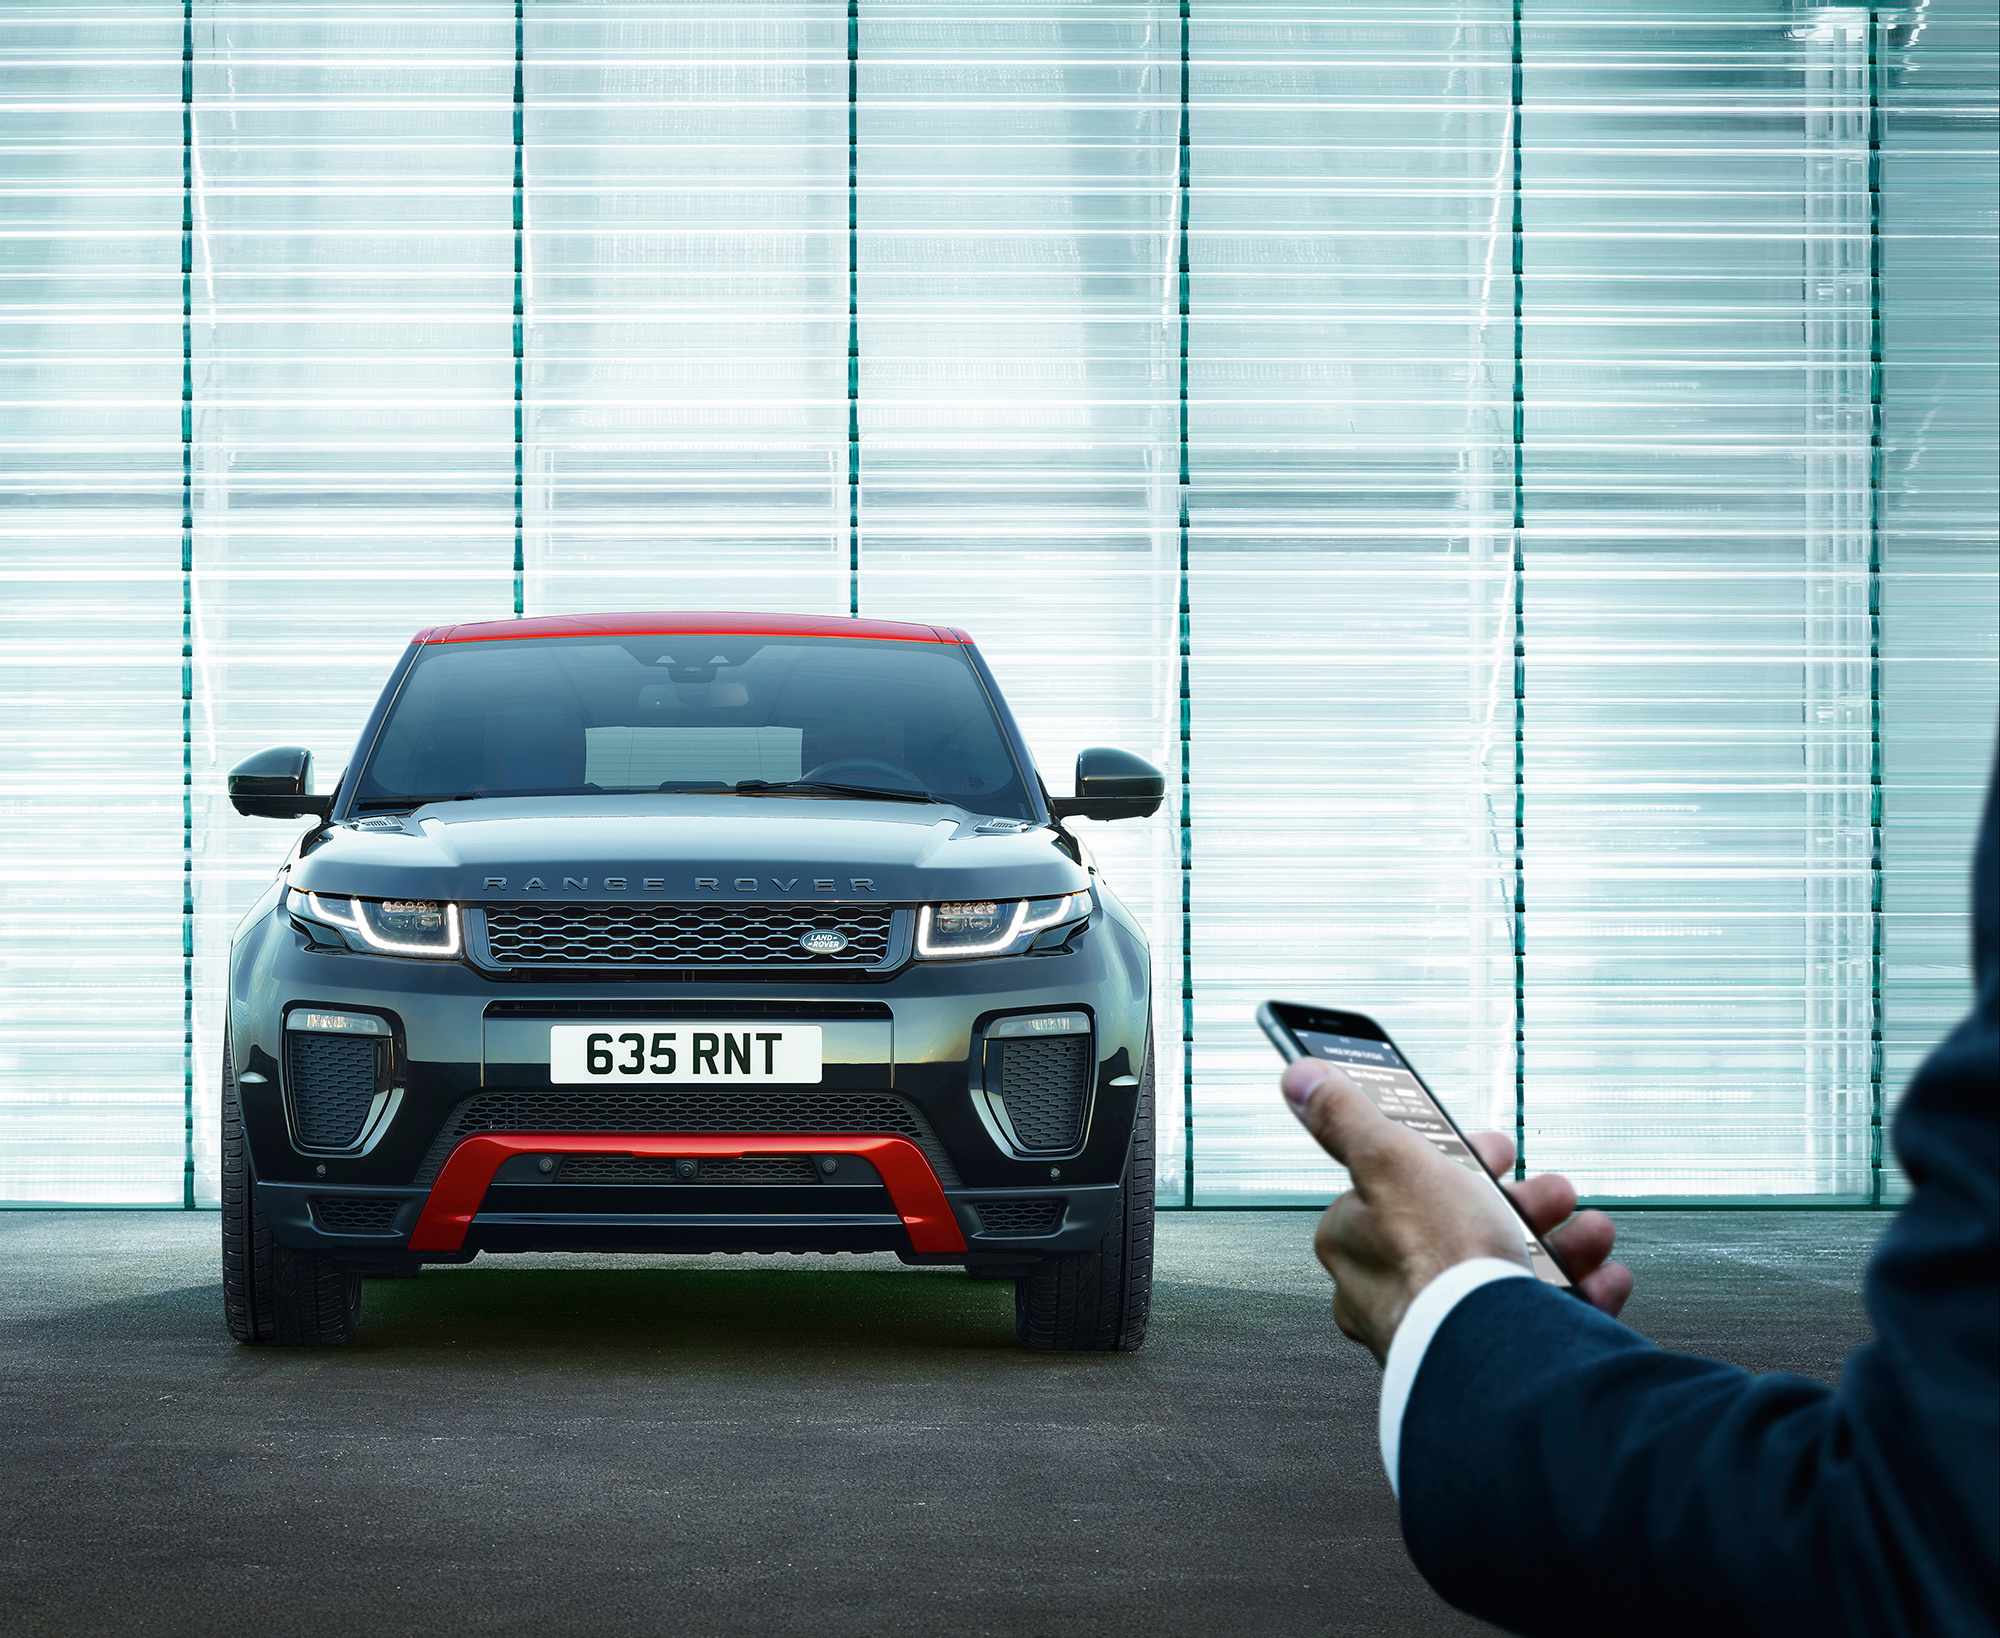 Range rover evoque 2017 wallpapers images photos pictures for The range wallpaper sale